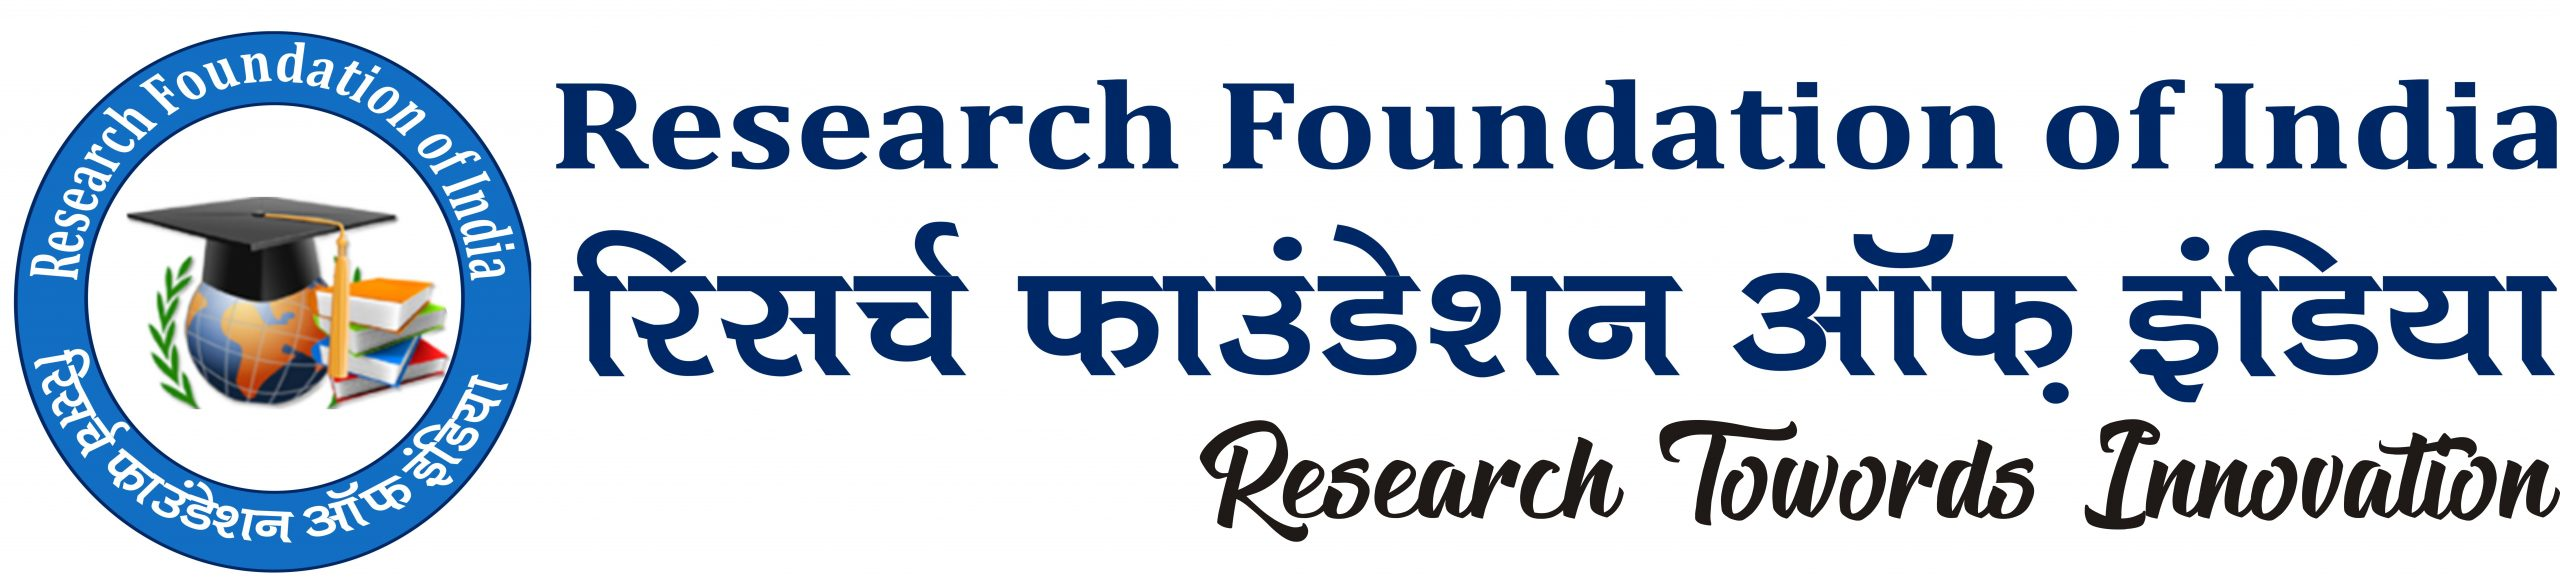 Research Foundation of India